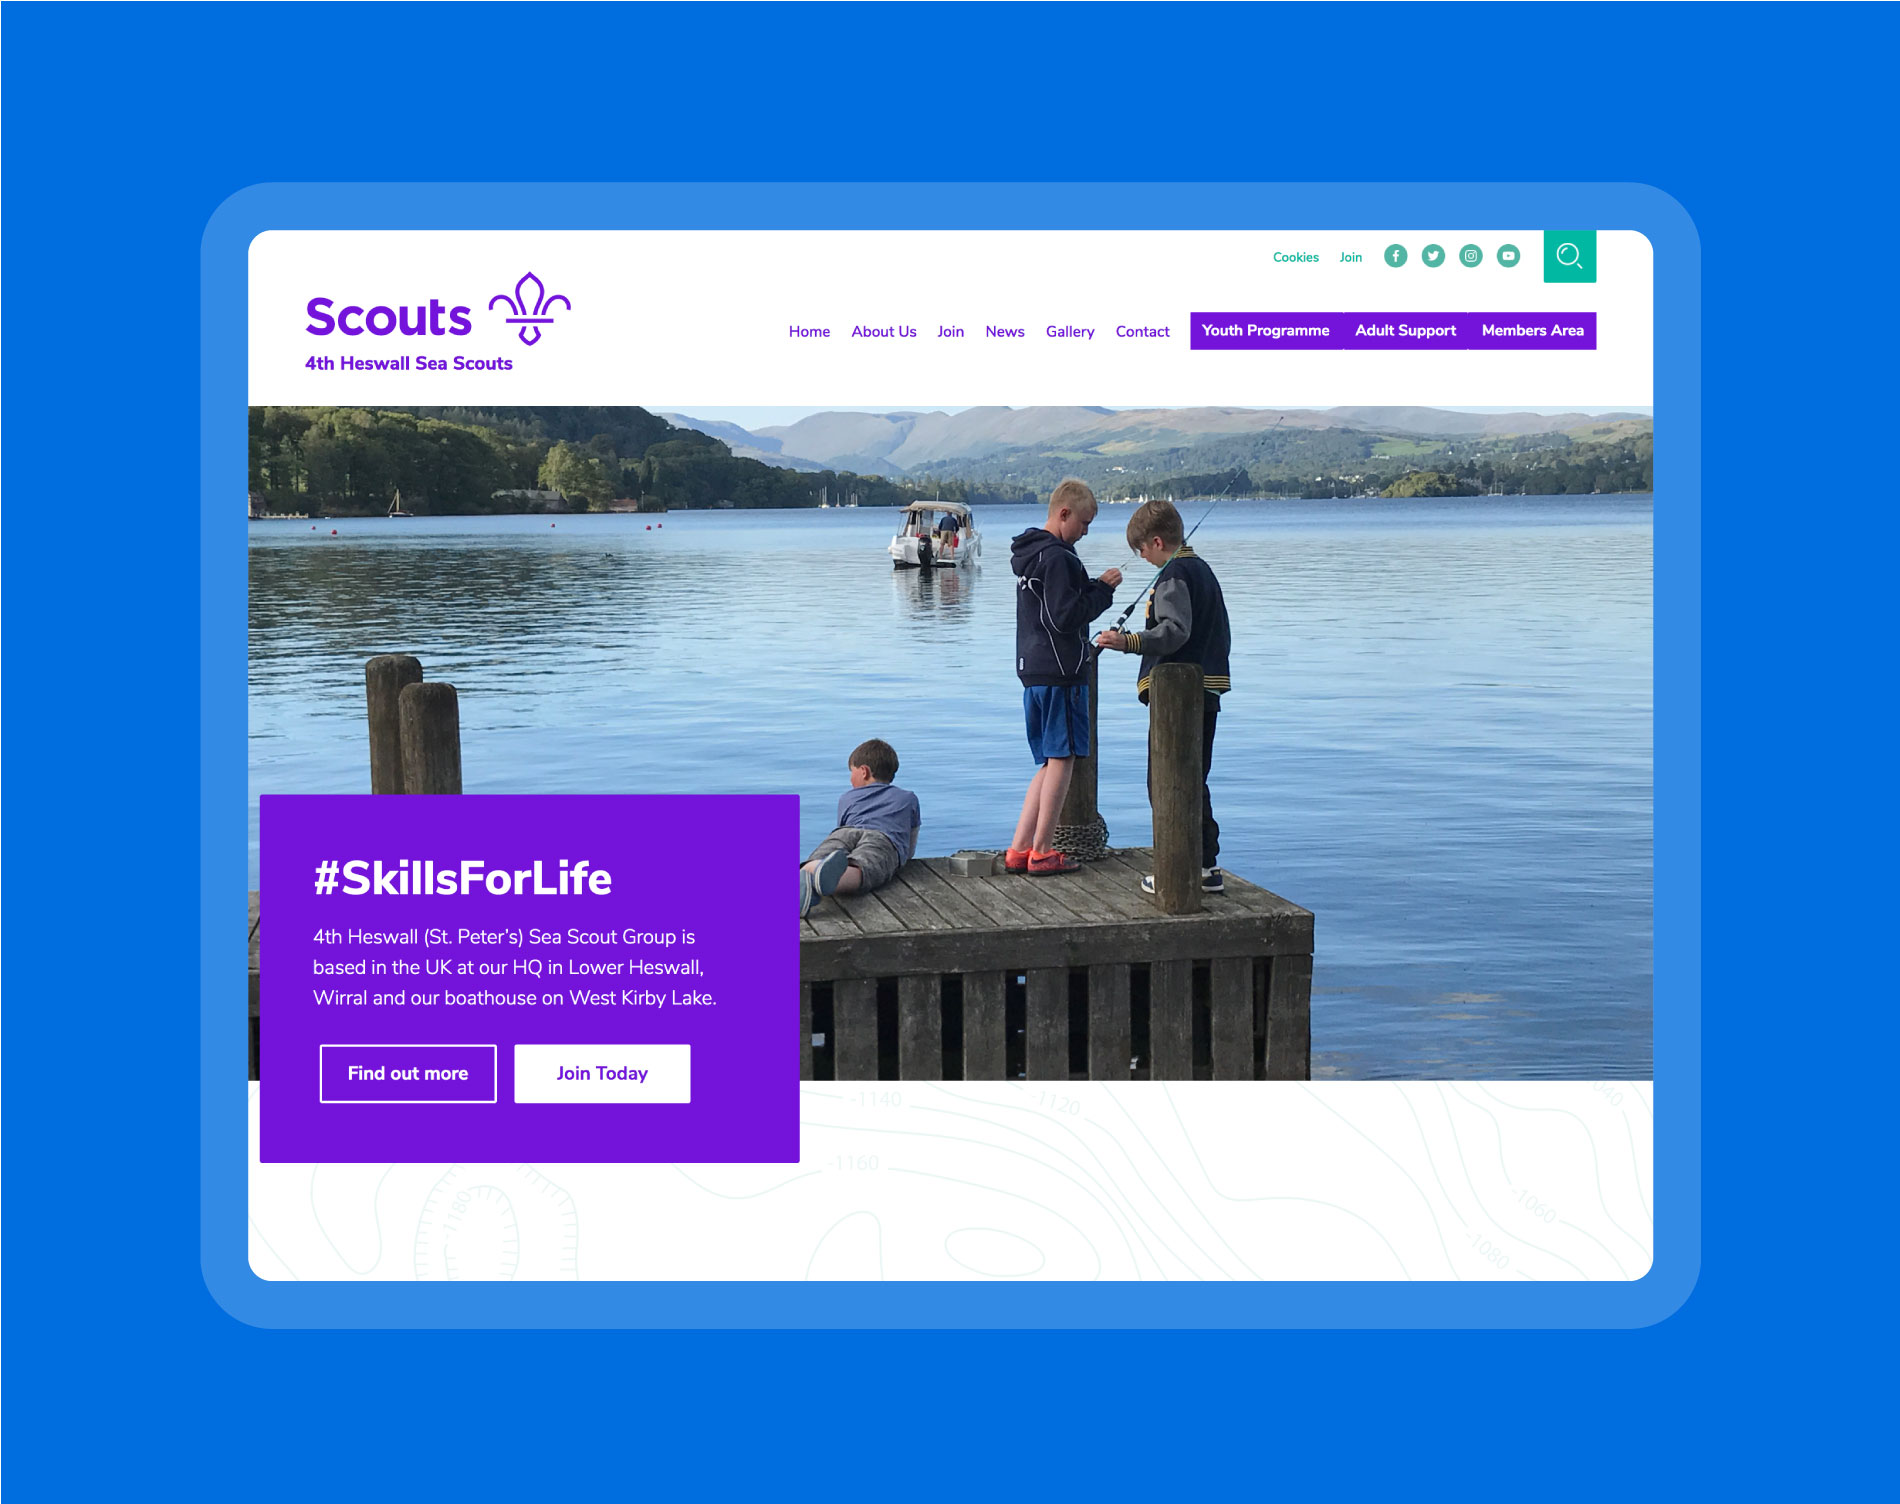 4th Heswall Sea Scouts use their website as a central hub for all of their news, events and documenting of their exciting expeditions and activities.